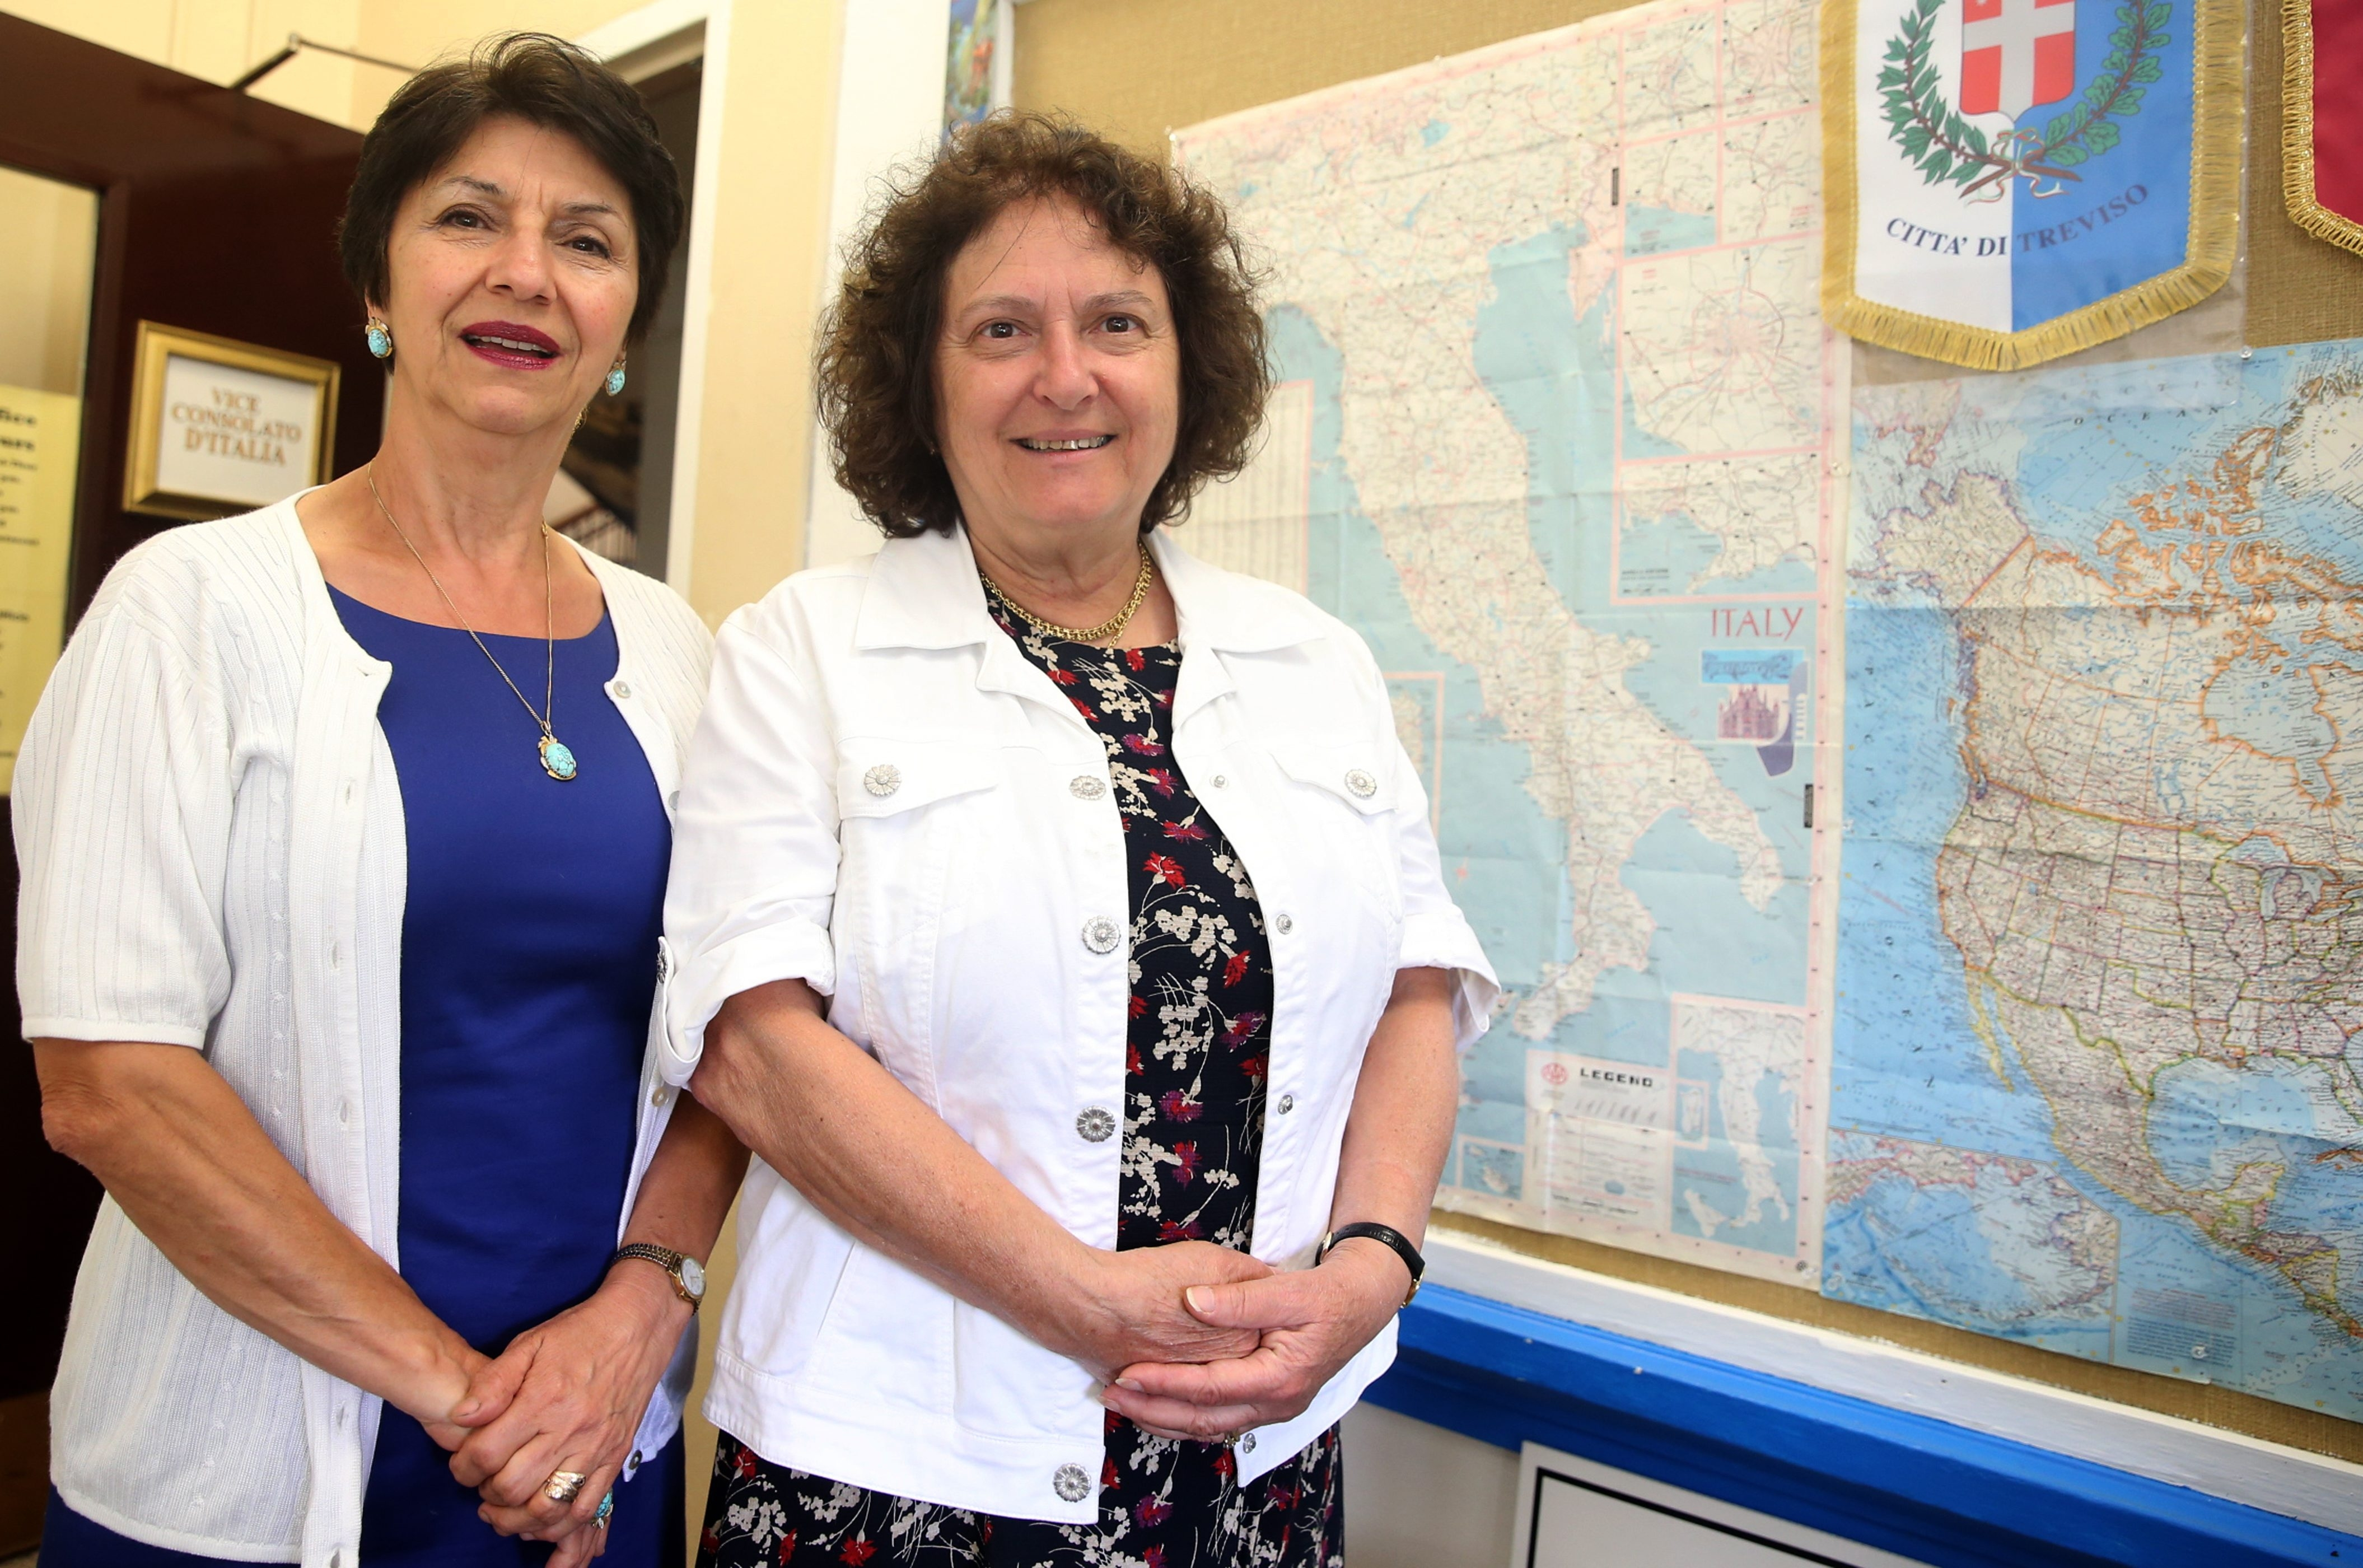 The Italian vice consulate Lucia Caracci Ederer, right, and assistant Dr. Elisa Ridolfi Wareham have settled into their new office at the Niagara Arts and Cultural Center.